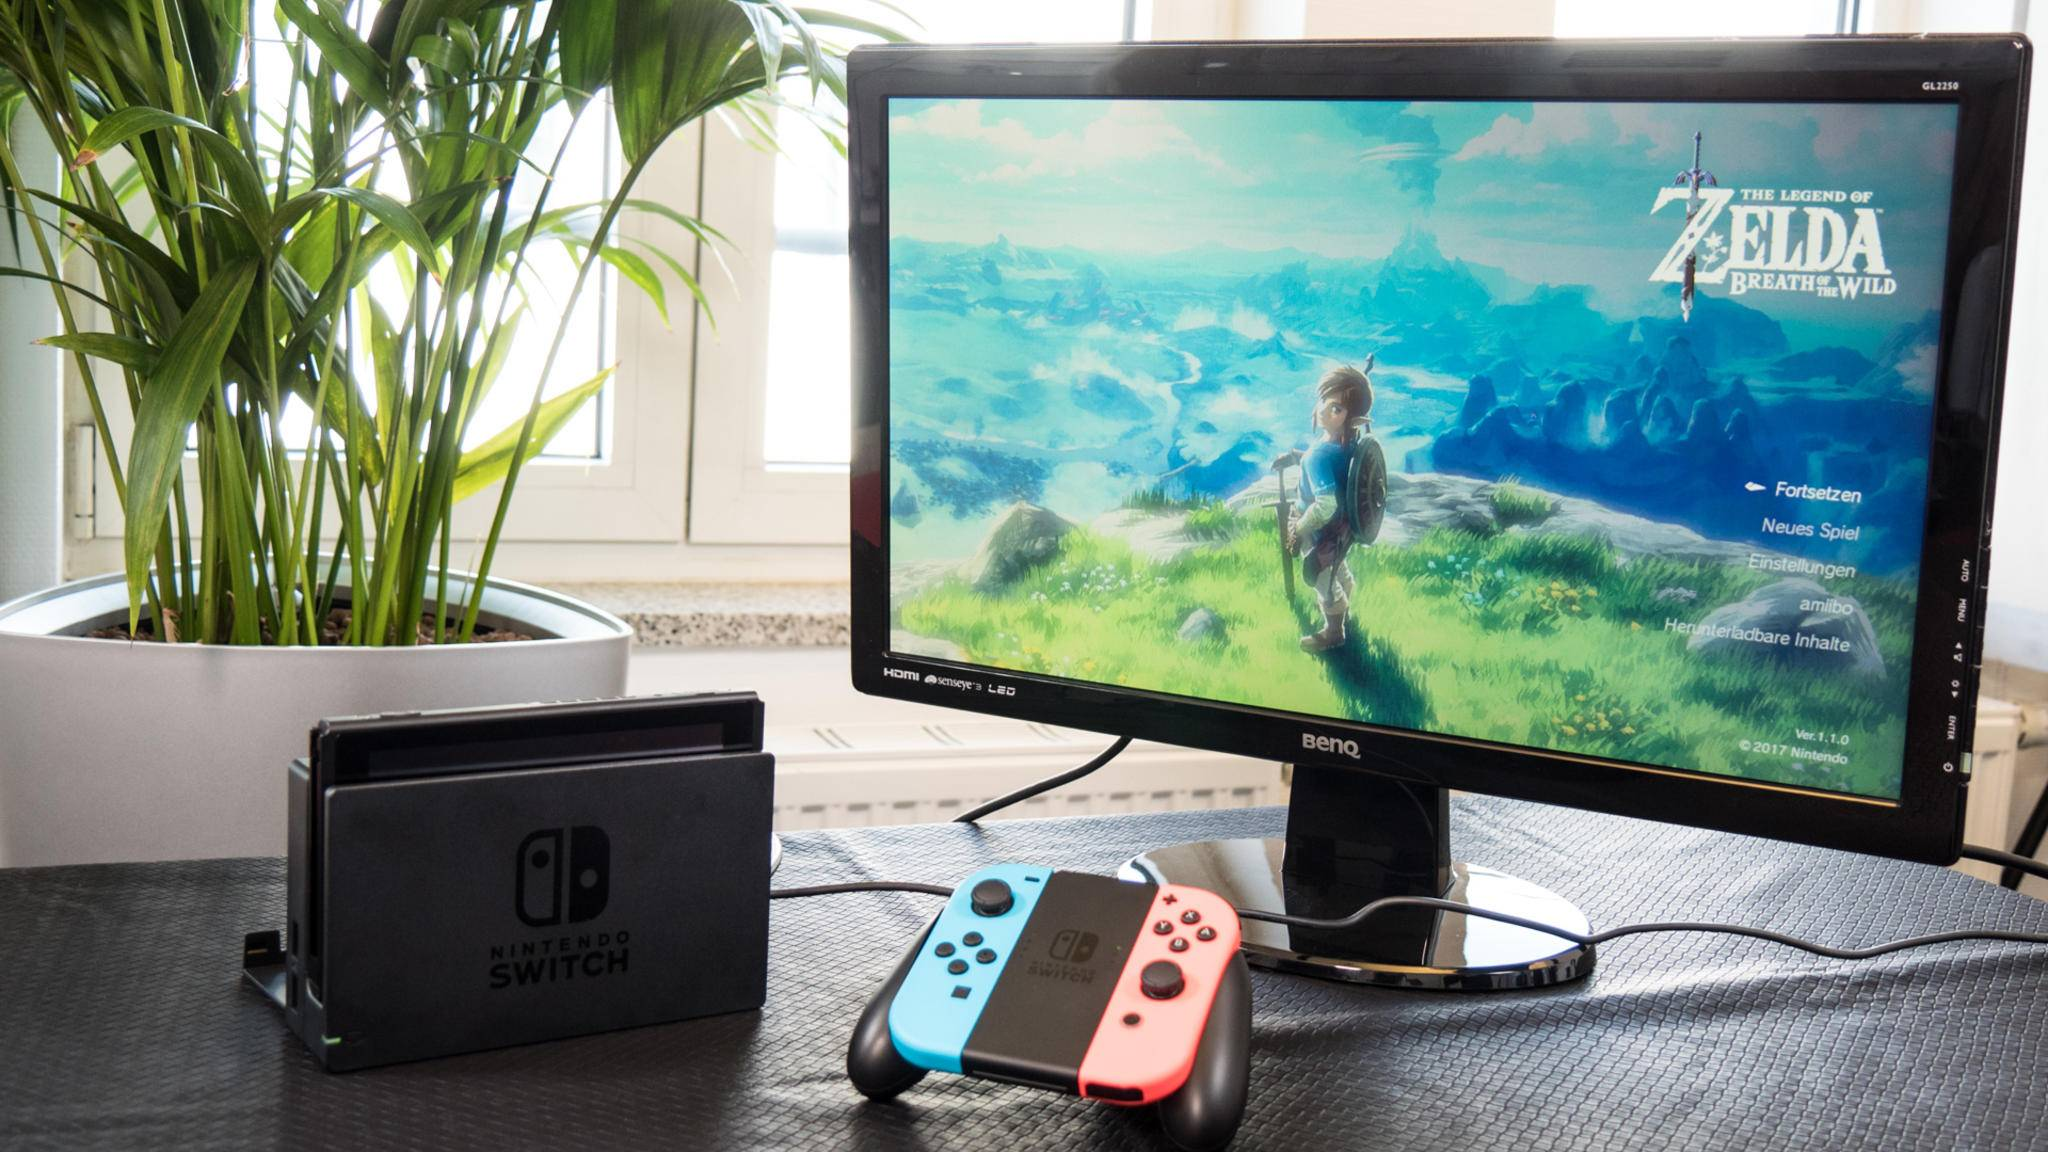 Die Nintendo Switch im TV-Modus.